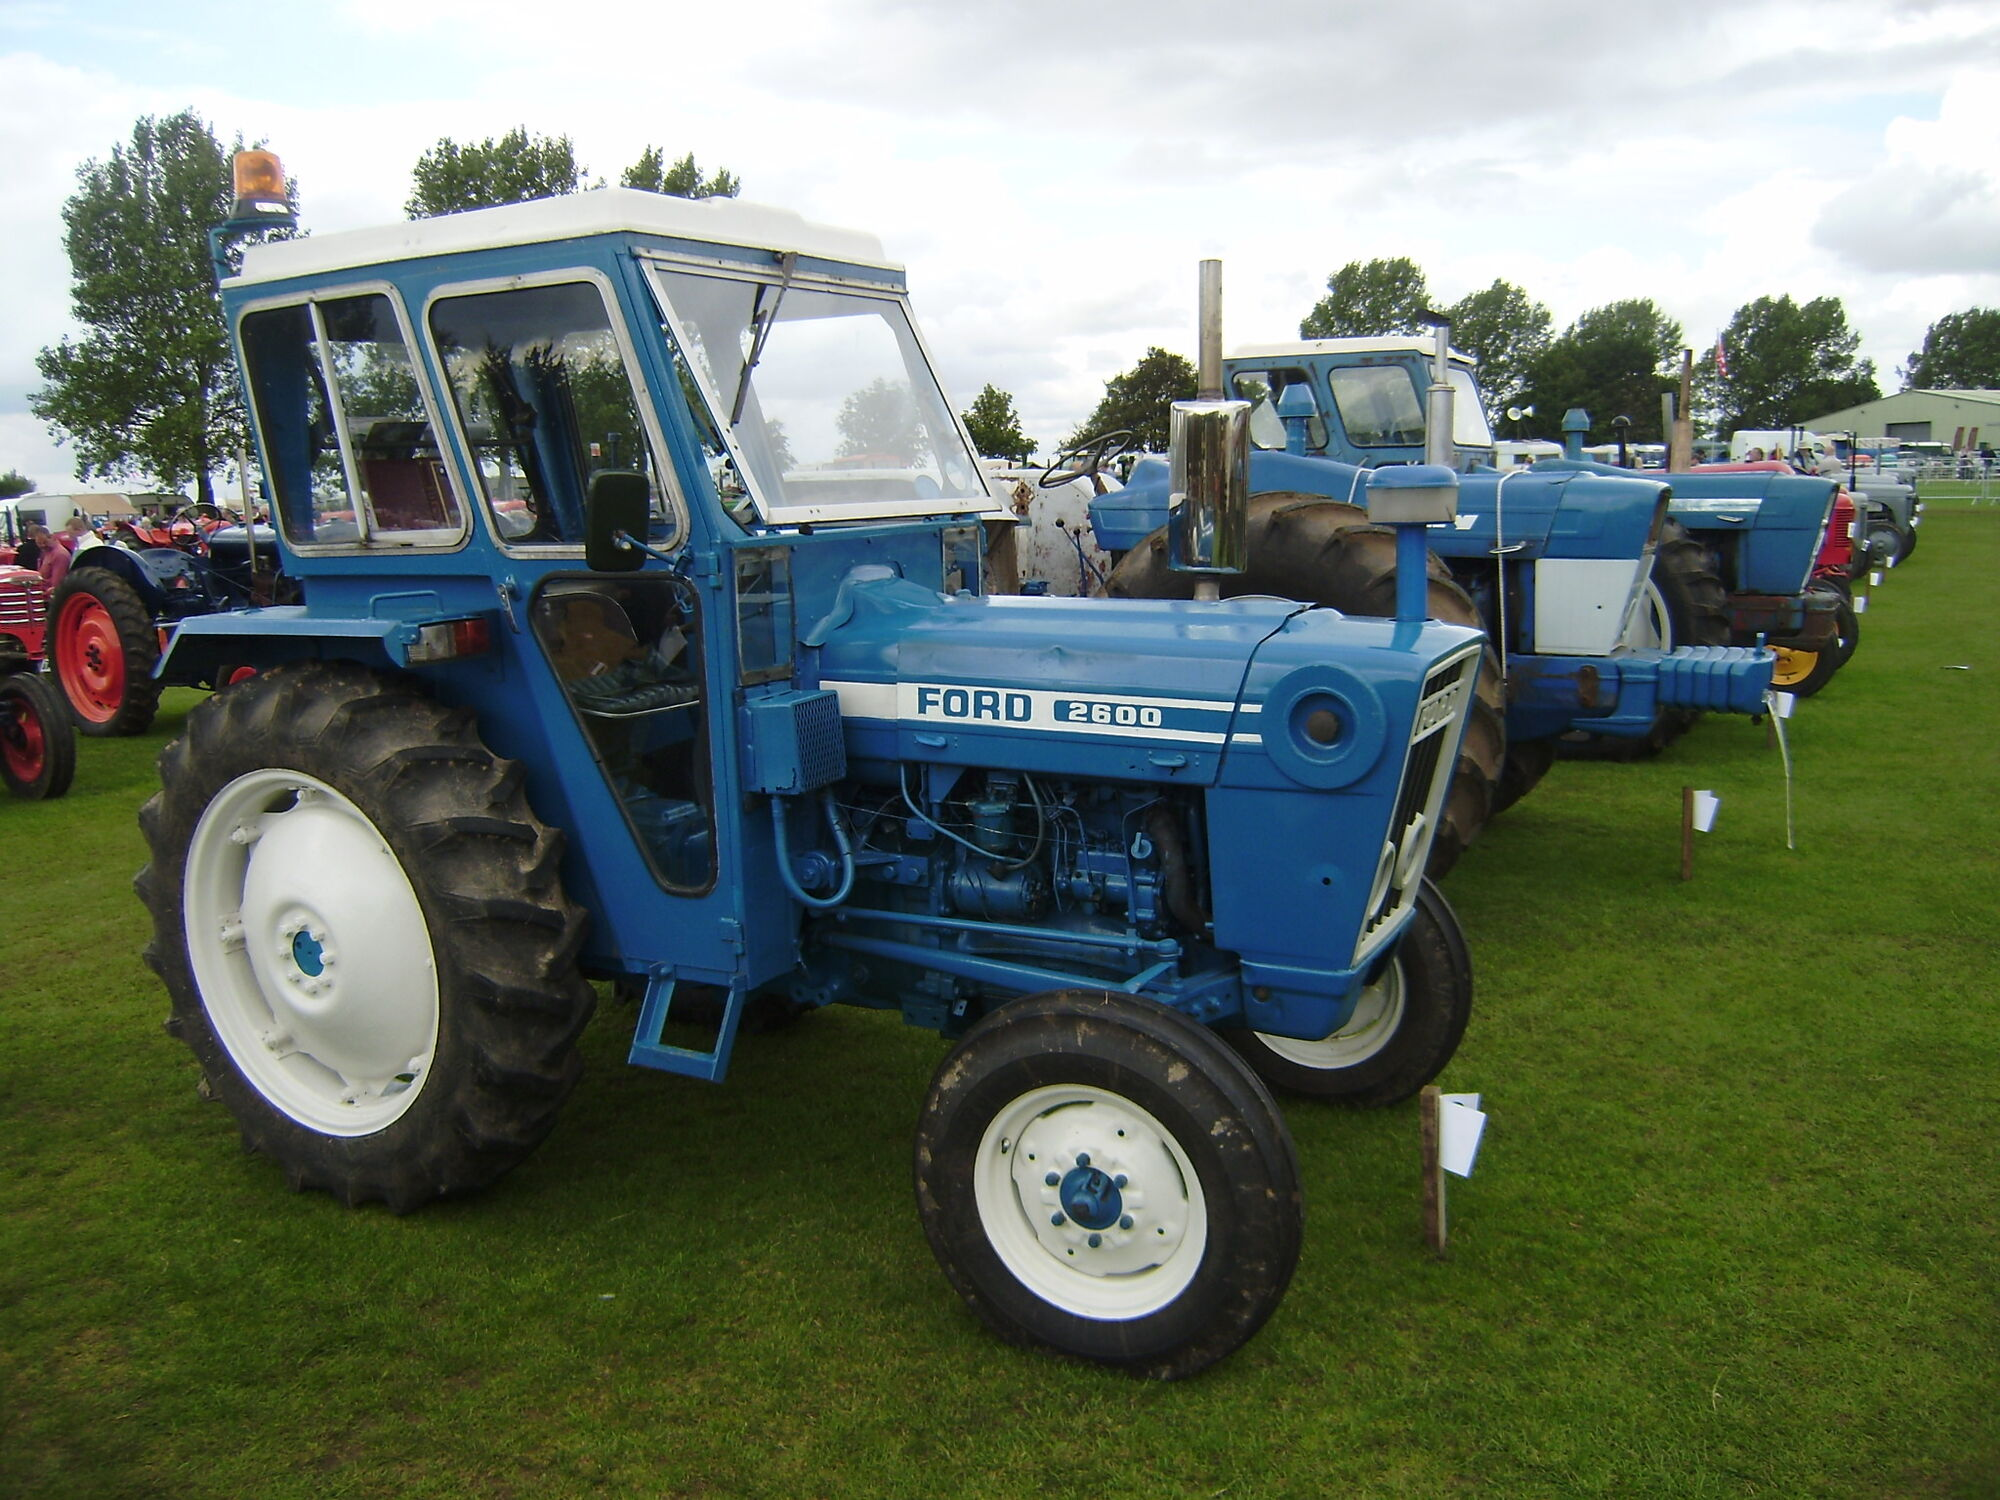 Ford Tractor 2600 Series : Ford tractor construction plant wiki fandom